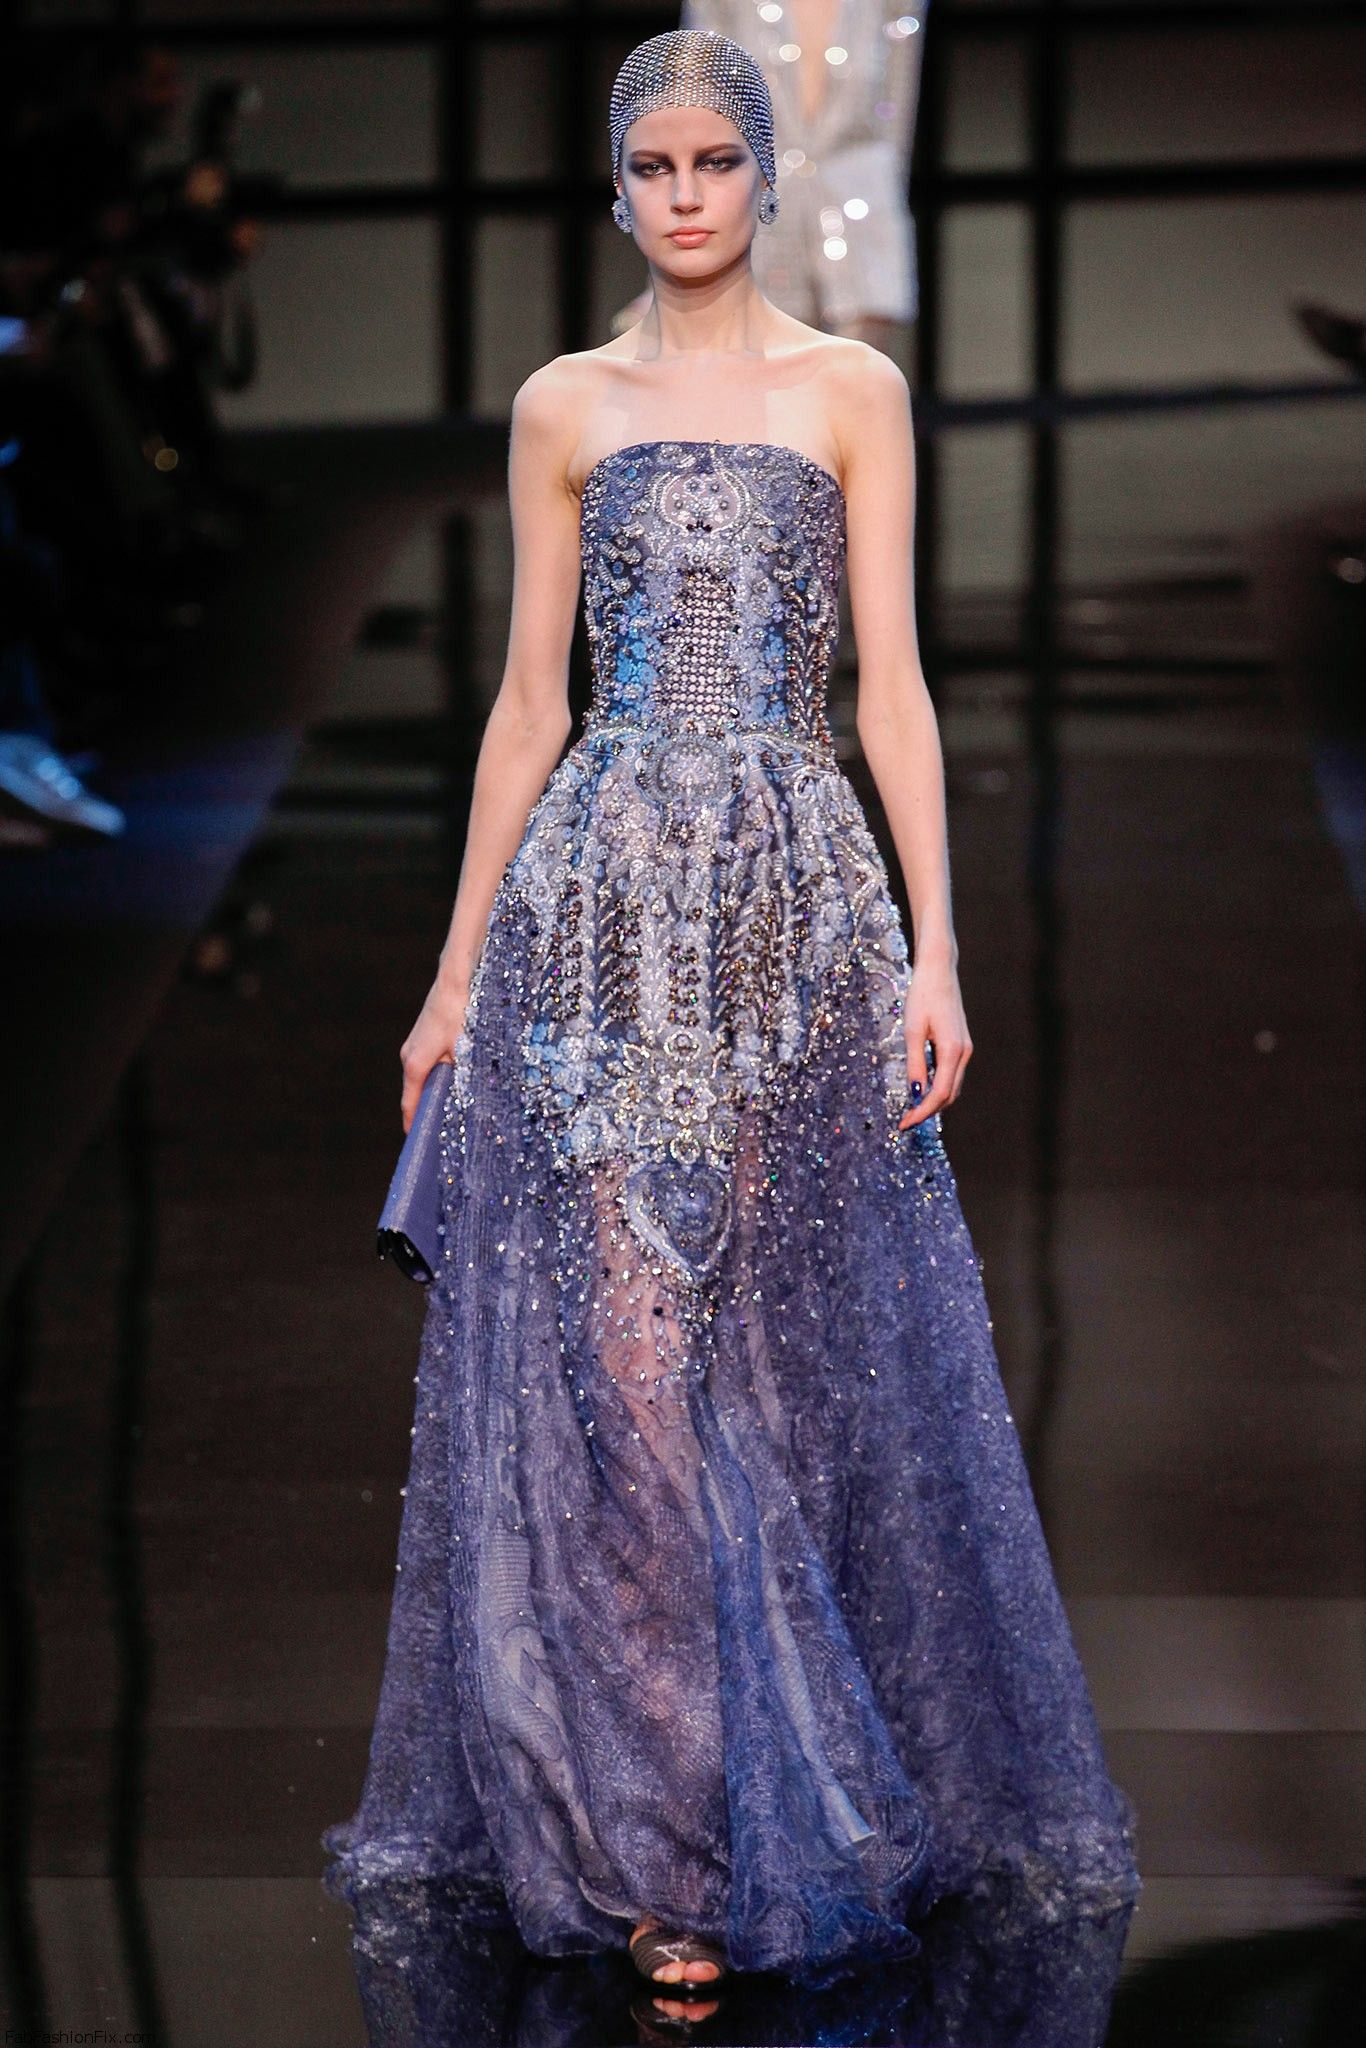 Armani priv haute couture spring 2014 collection fab for Hout couture